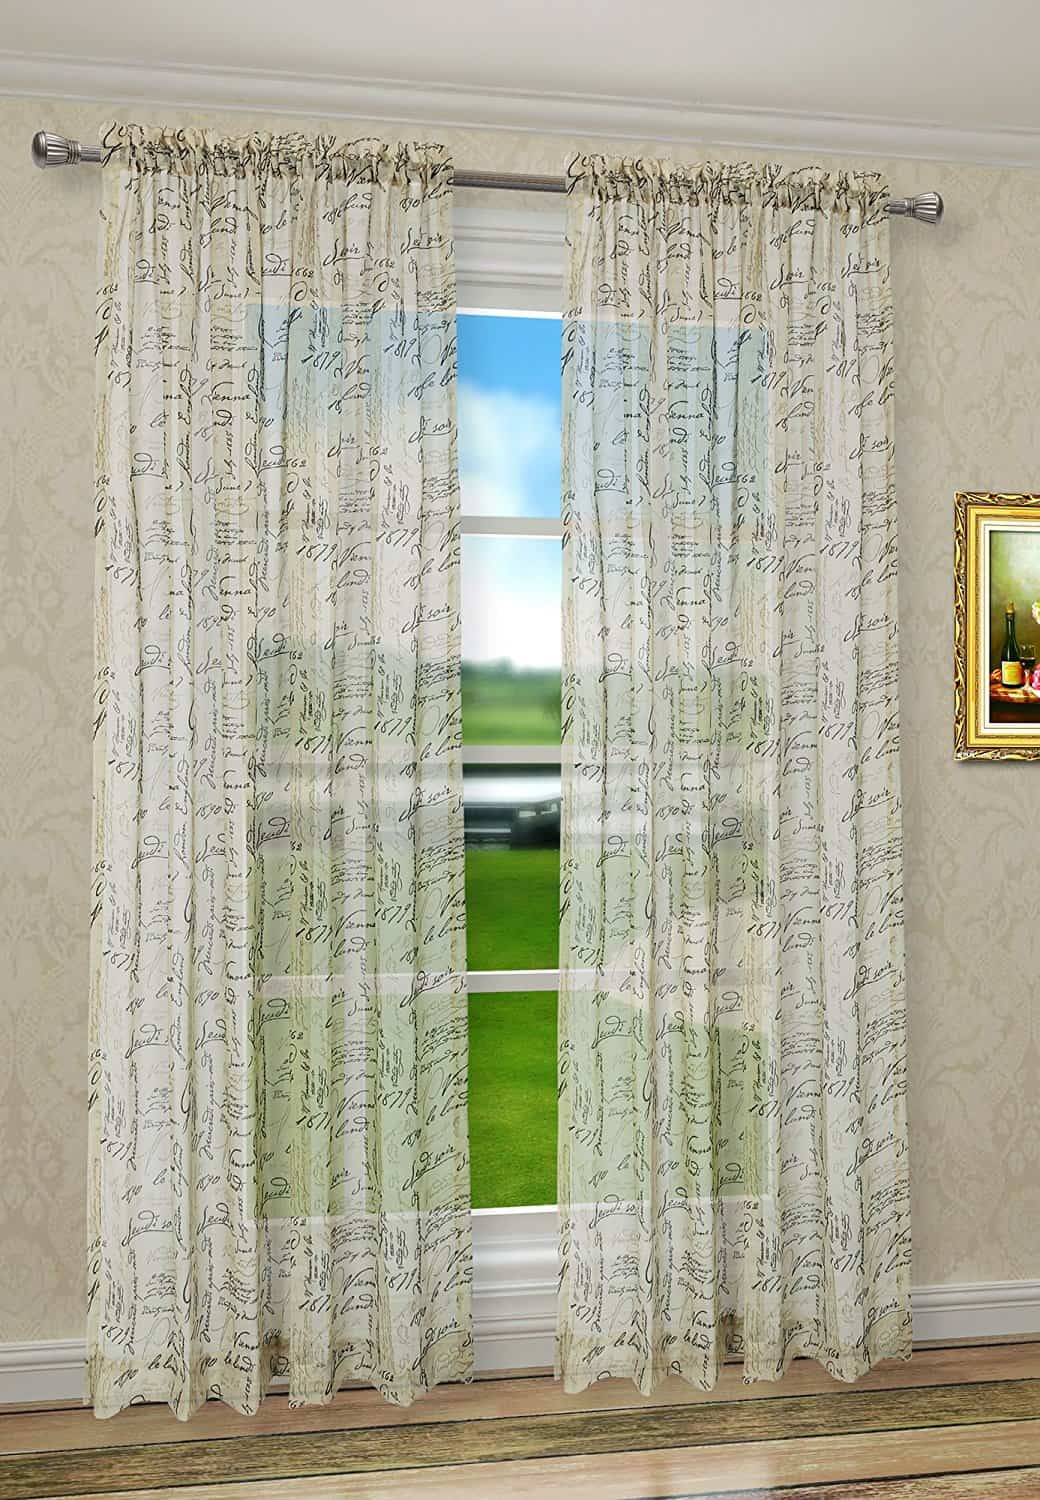 Euphoria CaliTime French Script Faux Linen Sheers Window Curtains